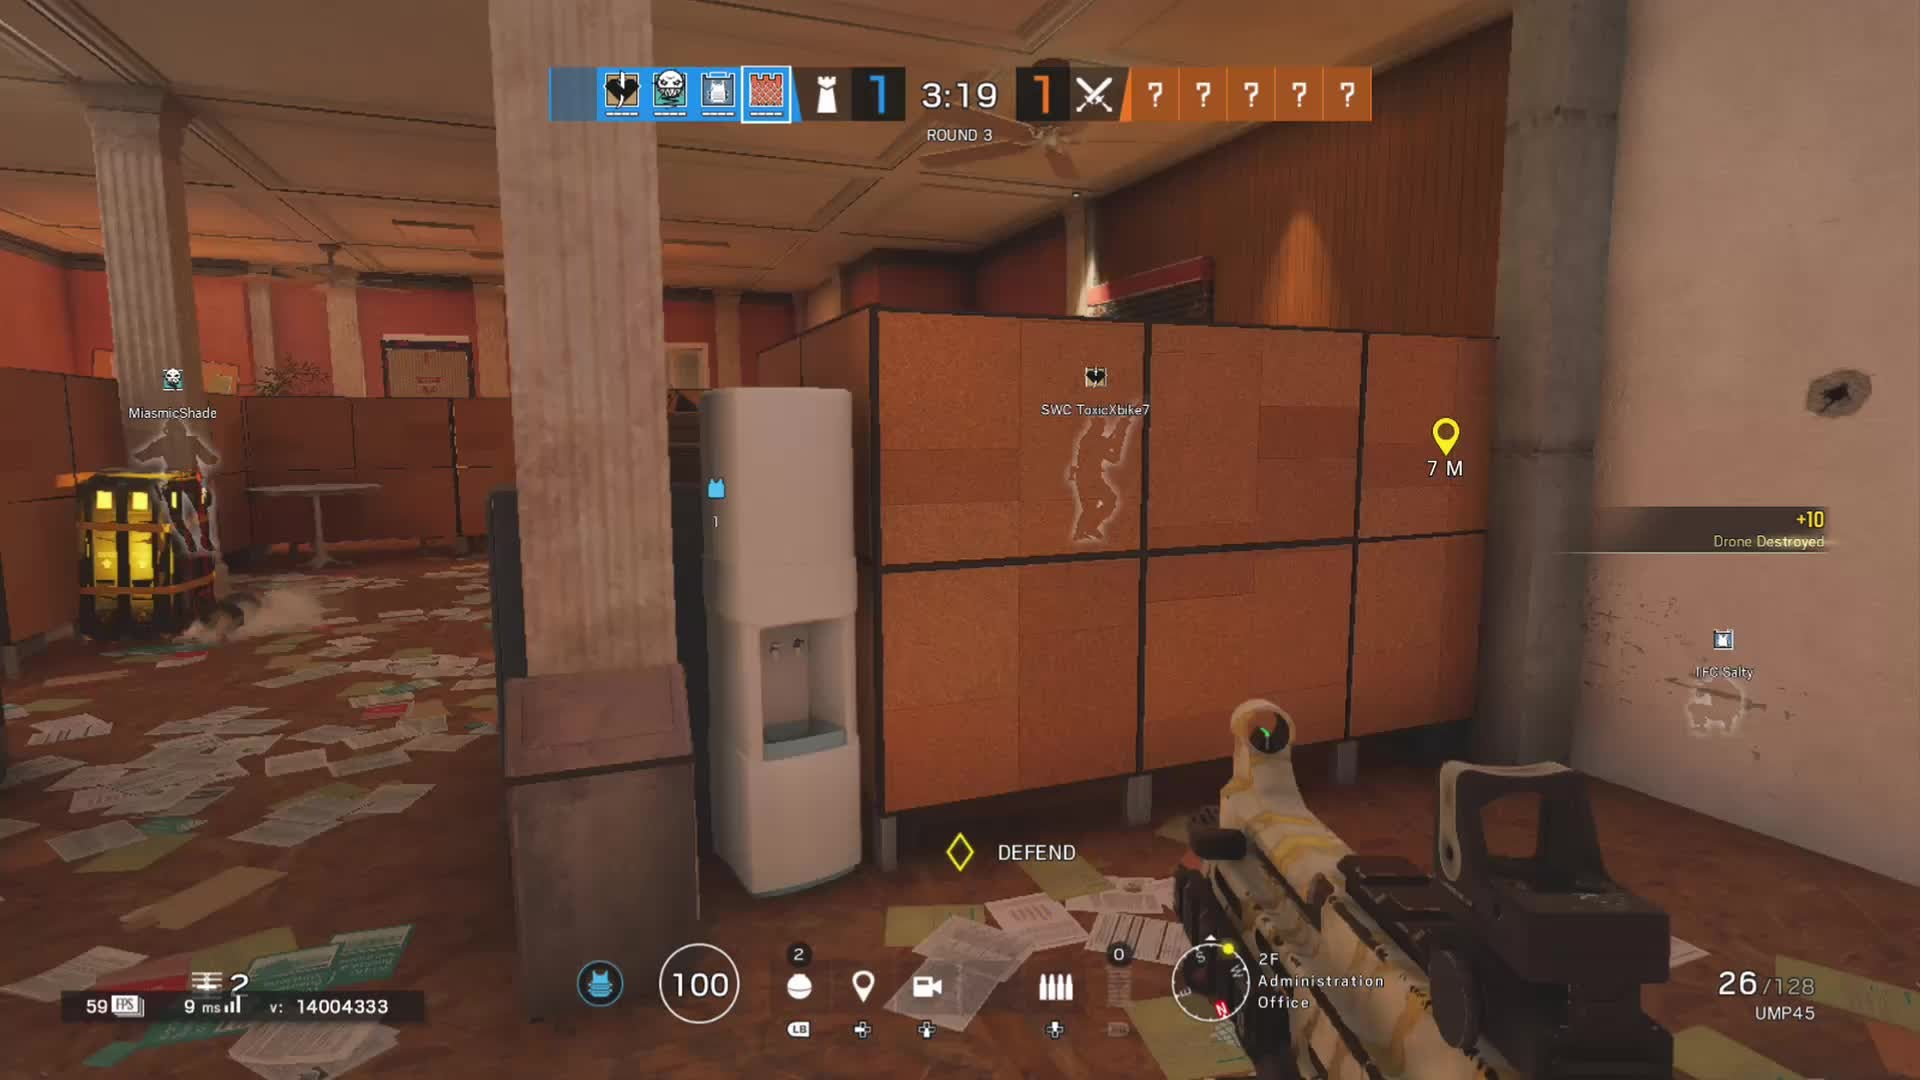 Rainbow Six: General - I dont know 1v5 video cover image 1